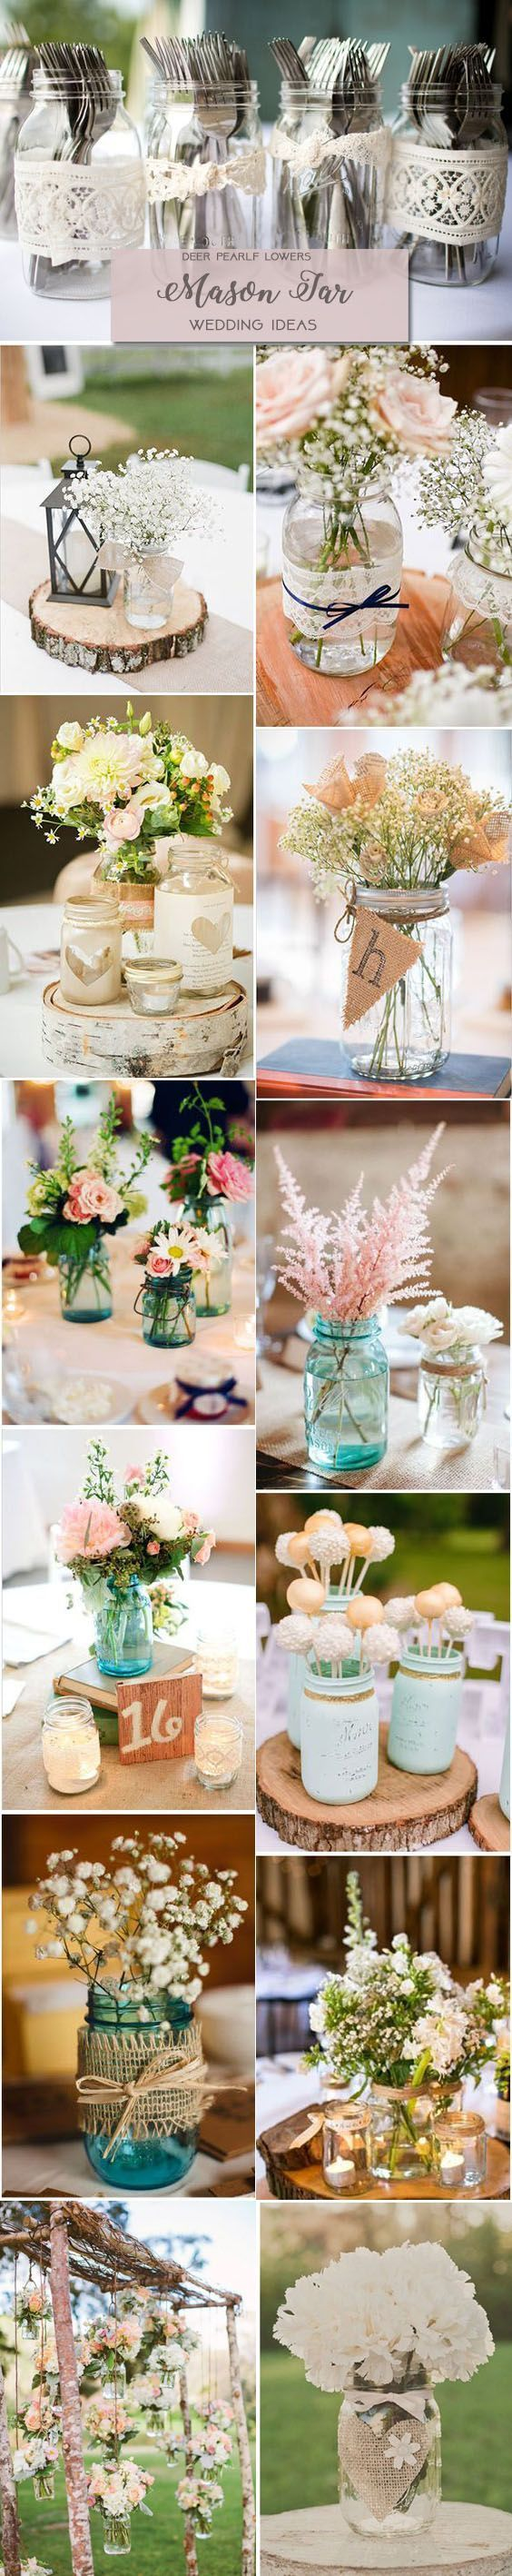 Rustic country wedding ideas - mason jar wedding centerpieces & decor / http://www.deerpearlflowers.com/rustic-wedding-themes-ideas/